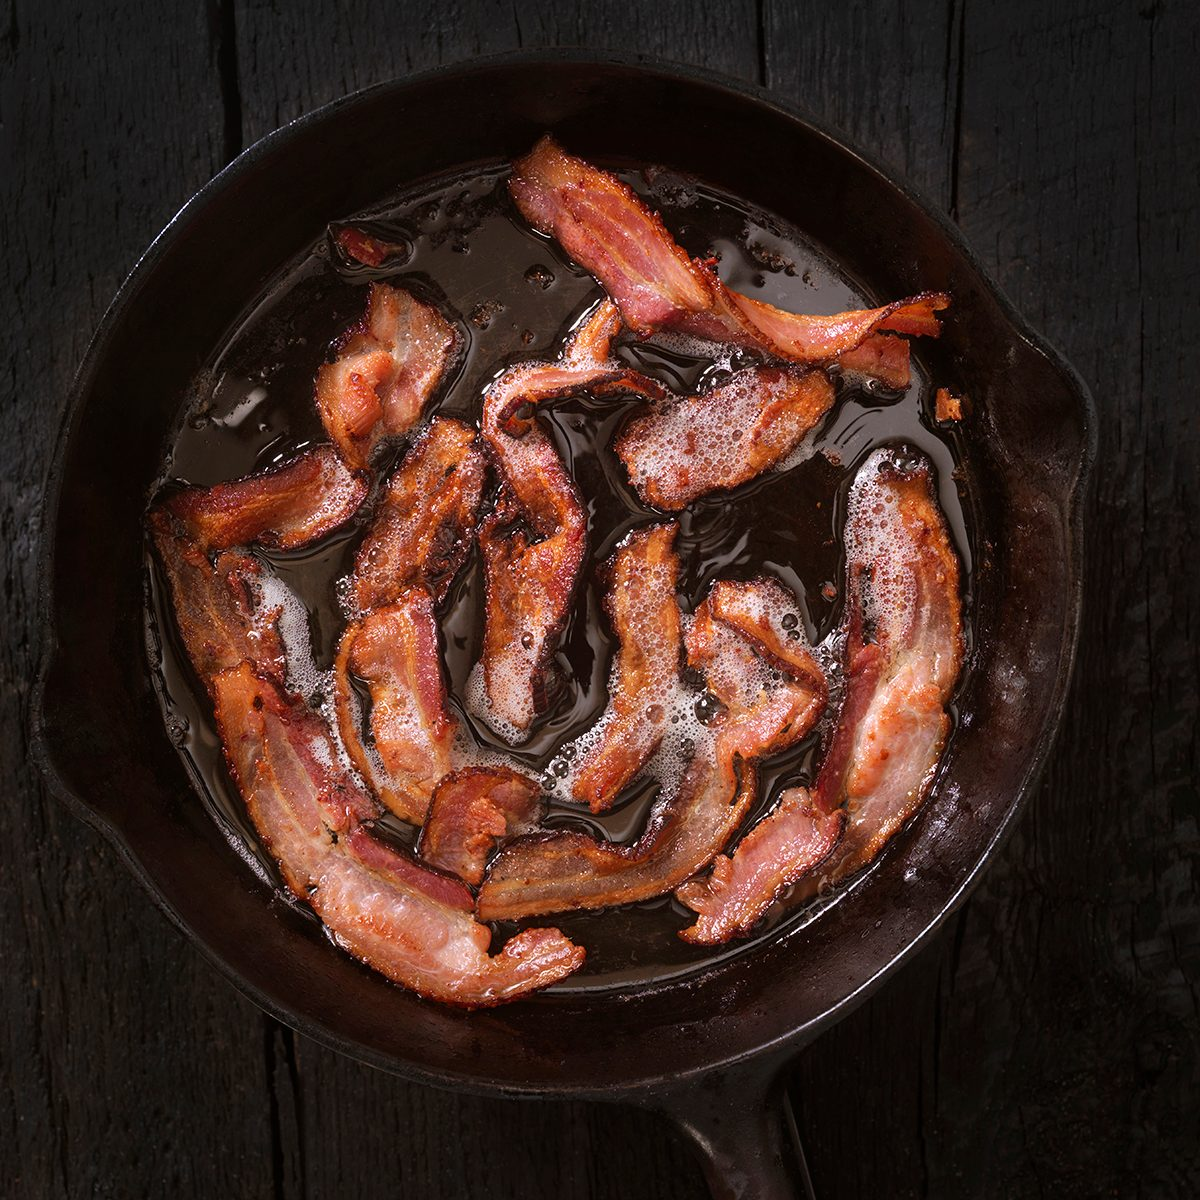 Bacon Frying -Photographed on Hasselblad H3D-39mb Camera